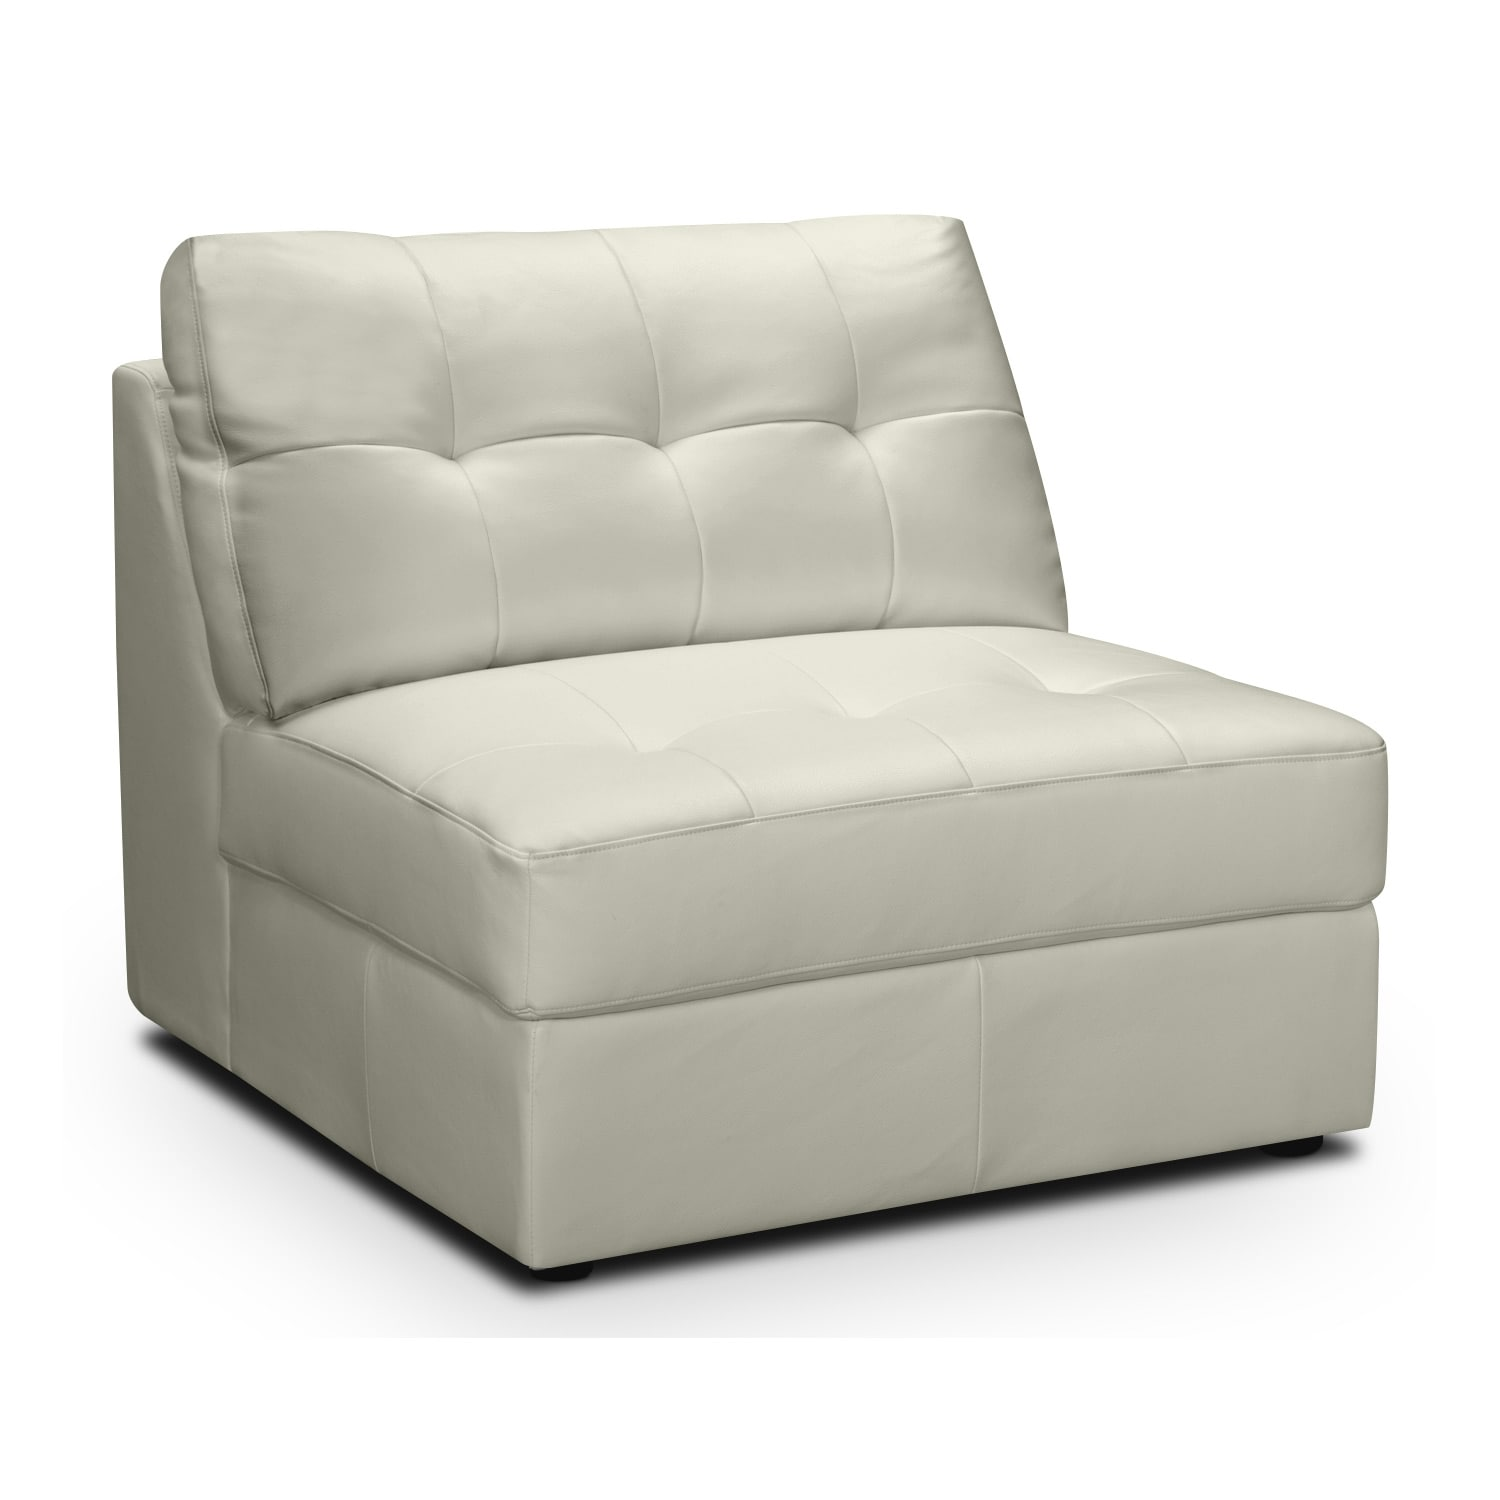 Living Room Furniture - Largo White Armless Chair